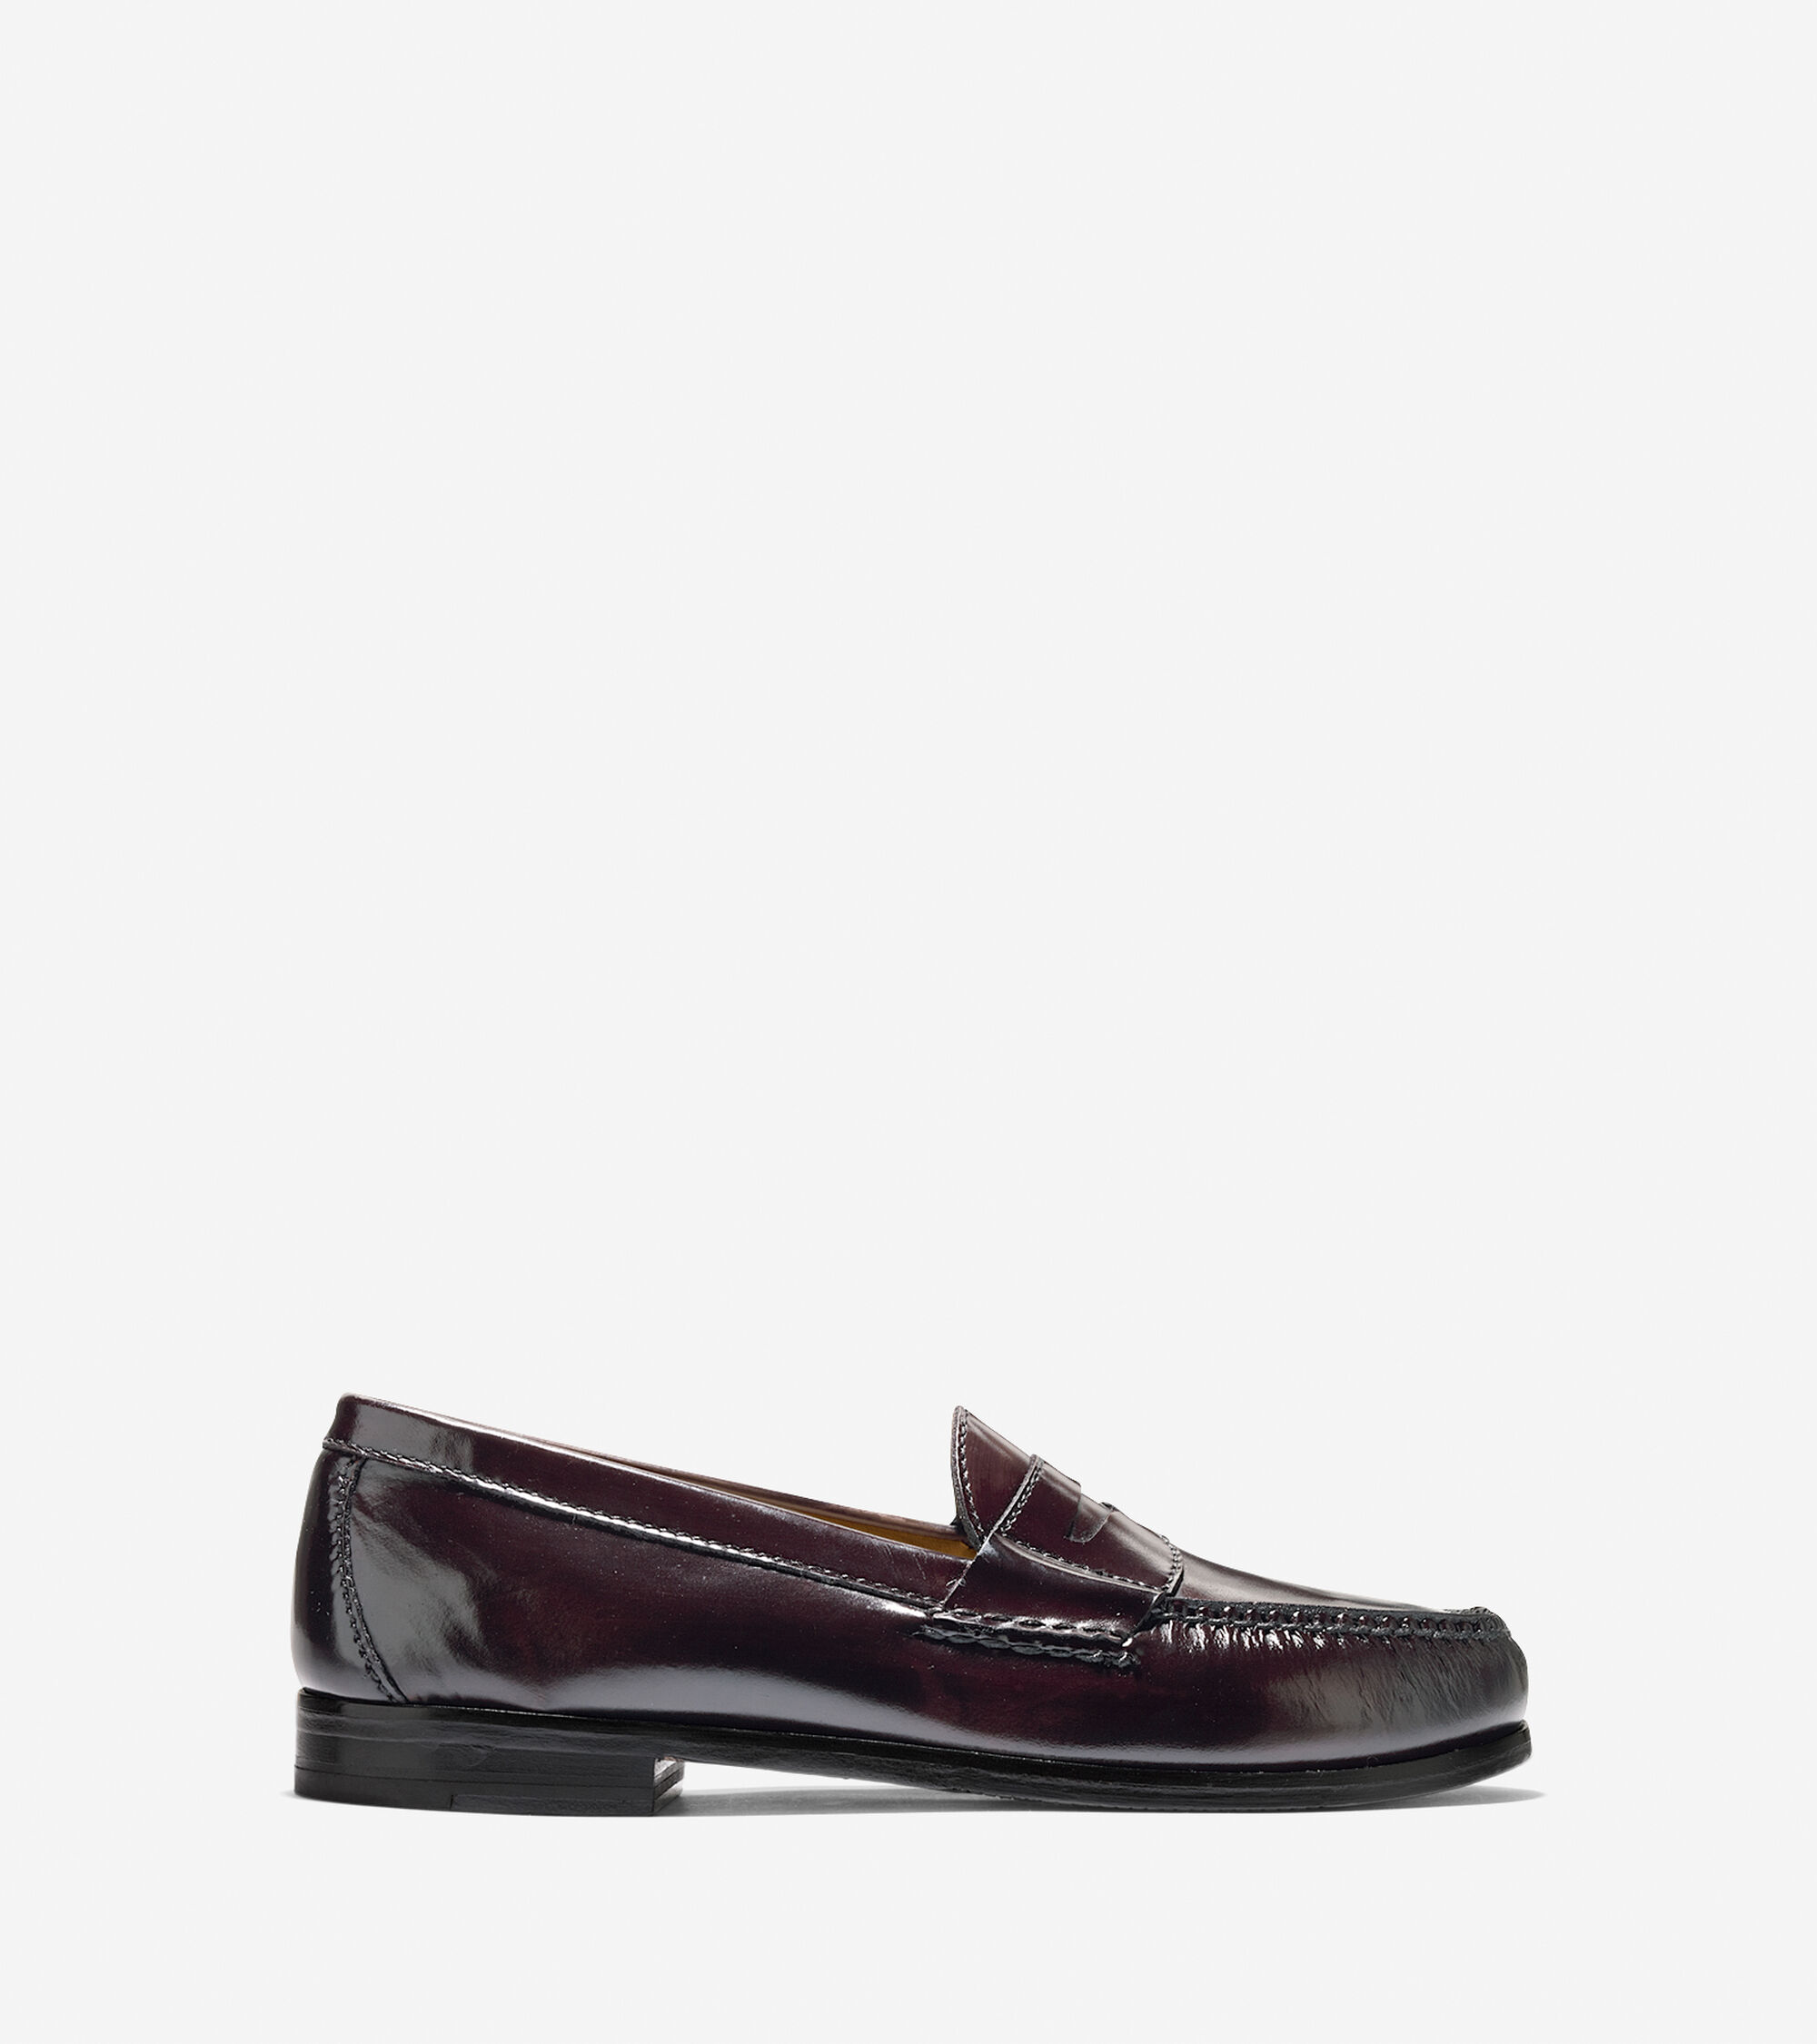 b8f893147d1 Pinch Grand Penny Loafers in Mahogany